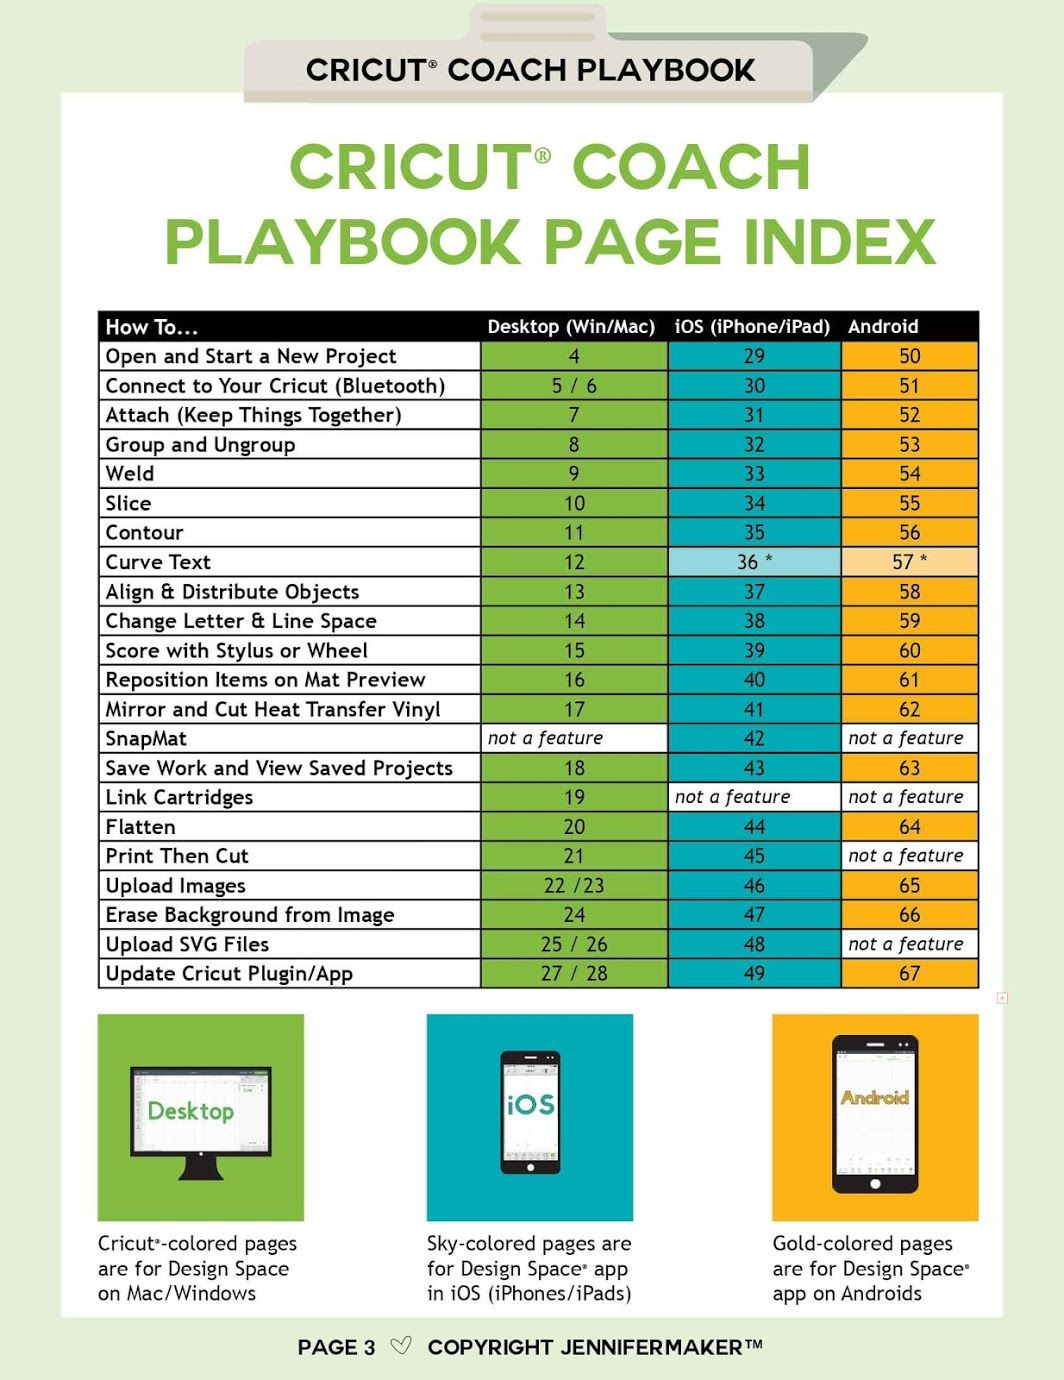 Cricut Coach Playbook Quick And Easy One Page Diagrams For Popular Tasks In Cricut Design Space Cricut Tutorials How To Use Cricut Cricut Design Studio